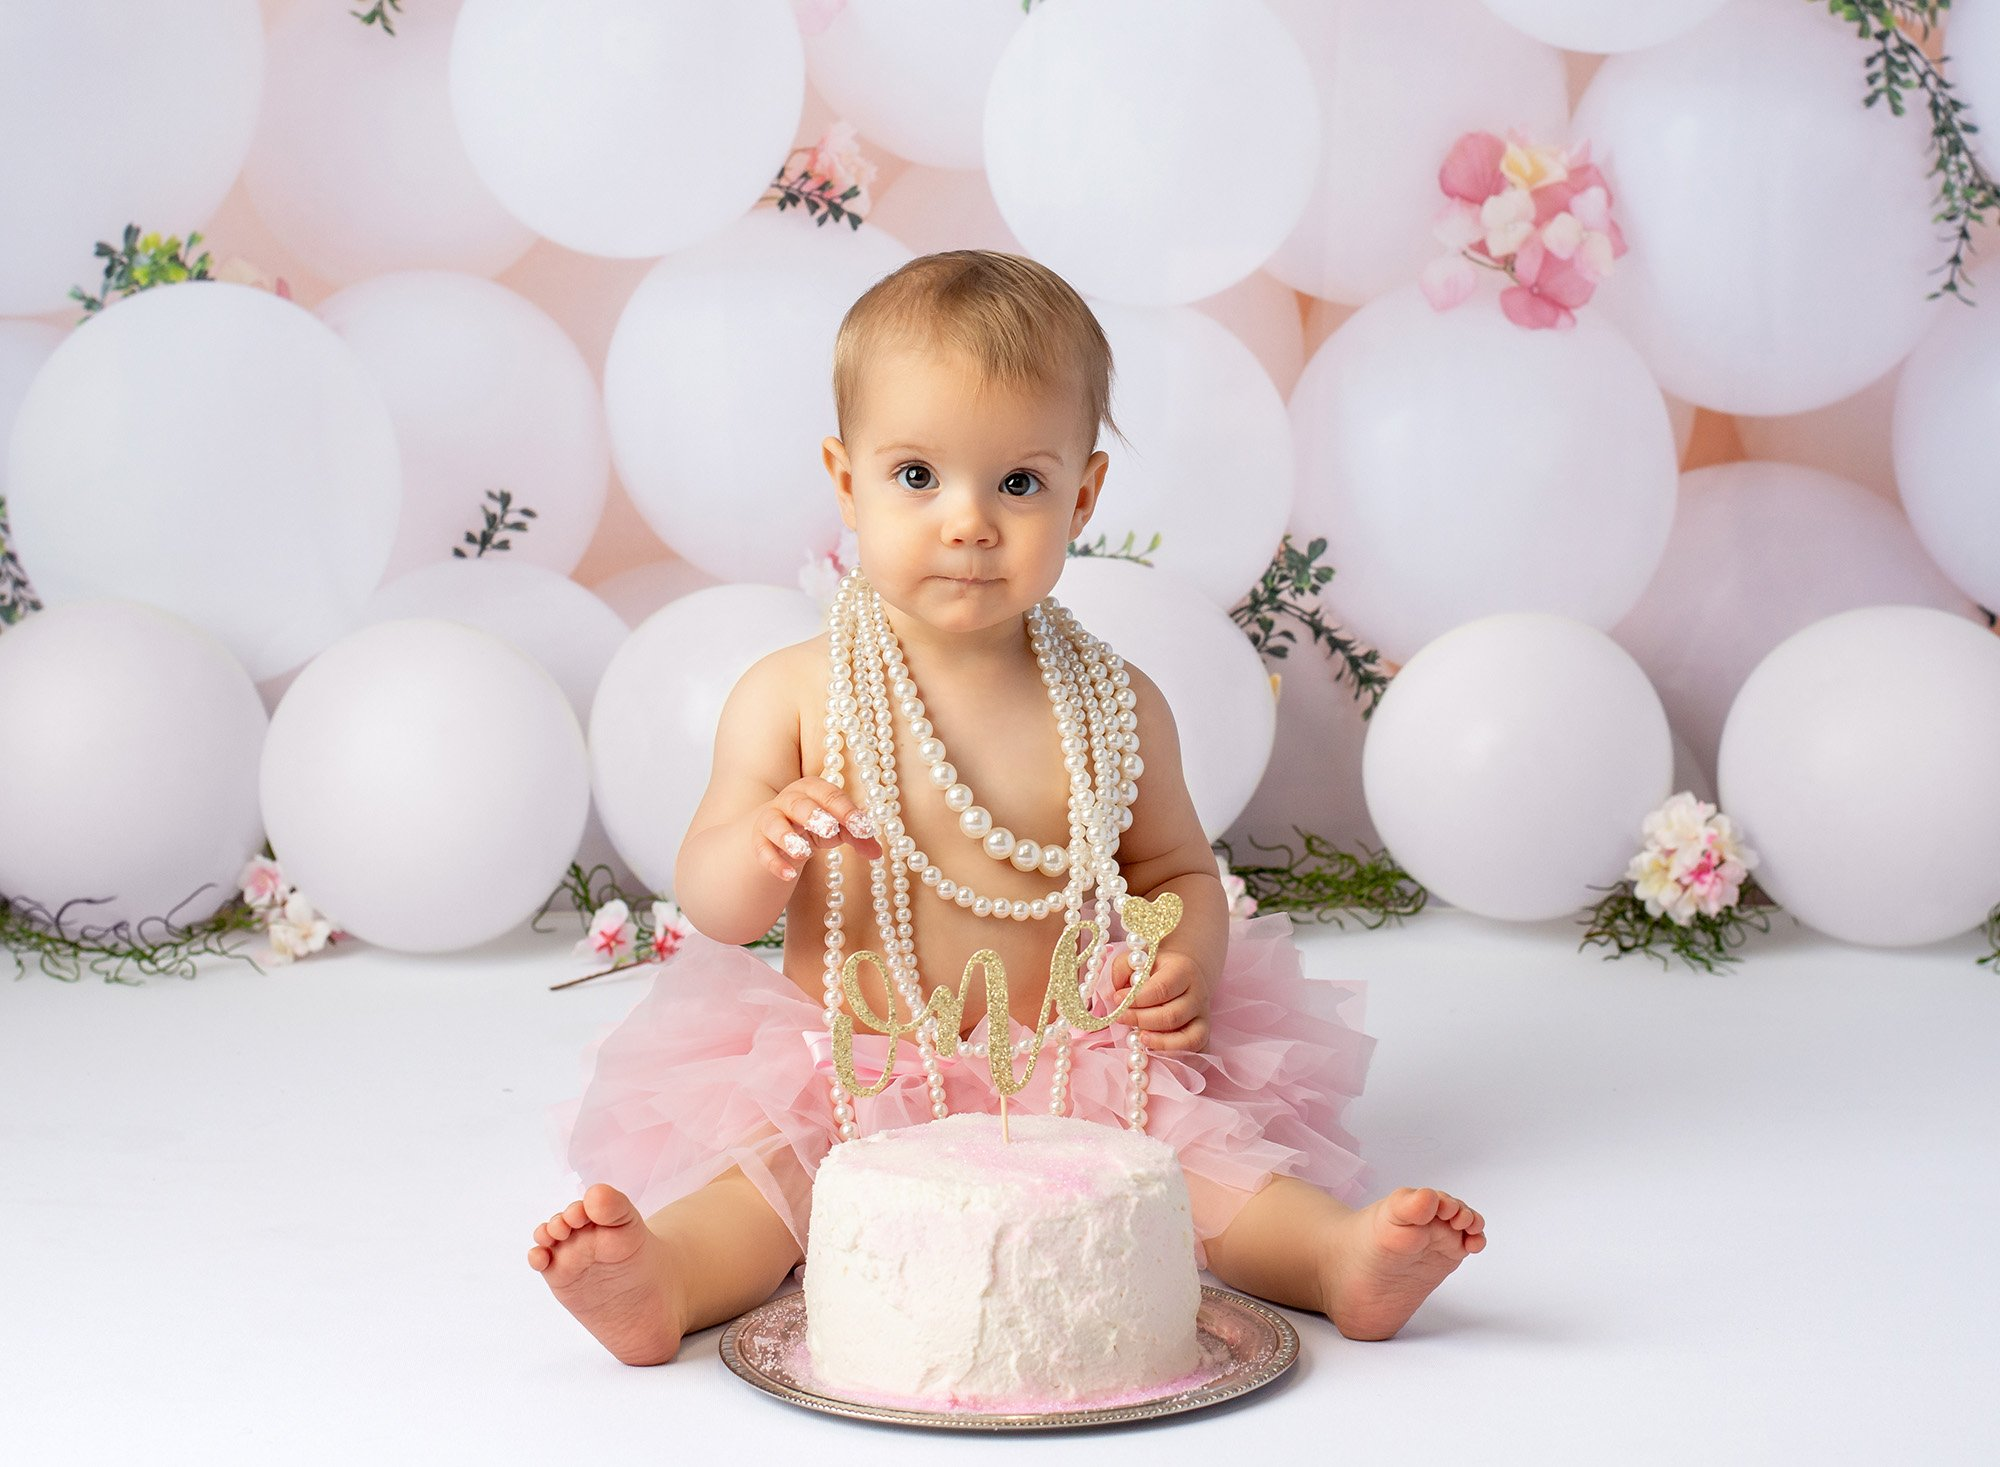 baby girl wearing layered pearl necklace and pink tutu sitting in front of cake with gold glitter ONE sign with white balloons in background and frosting on fingers